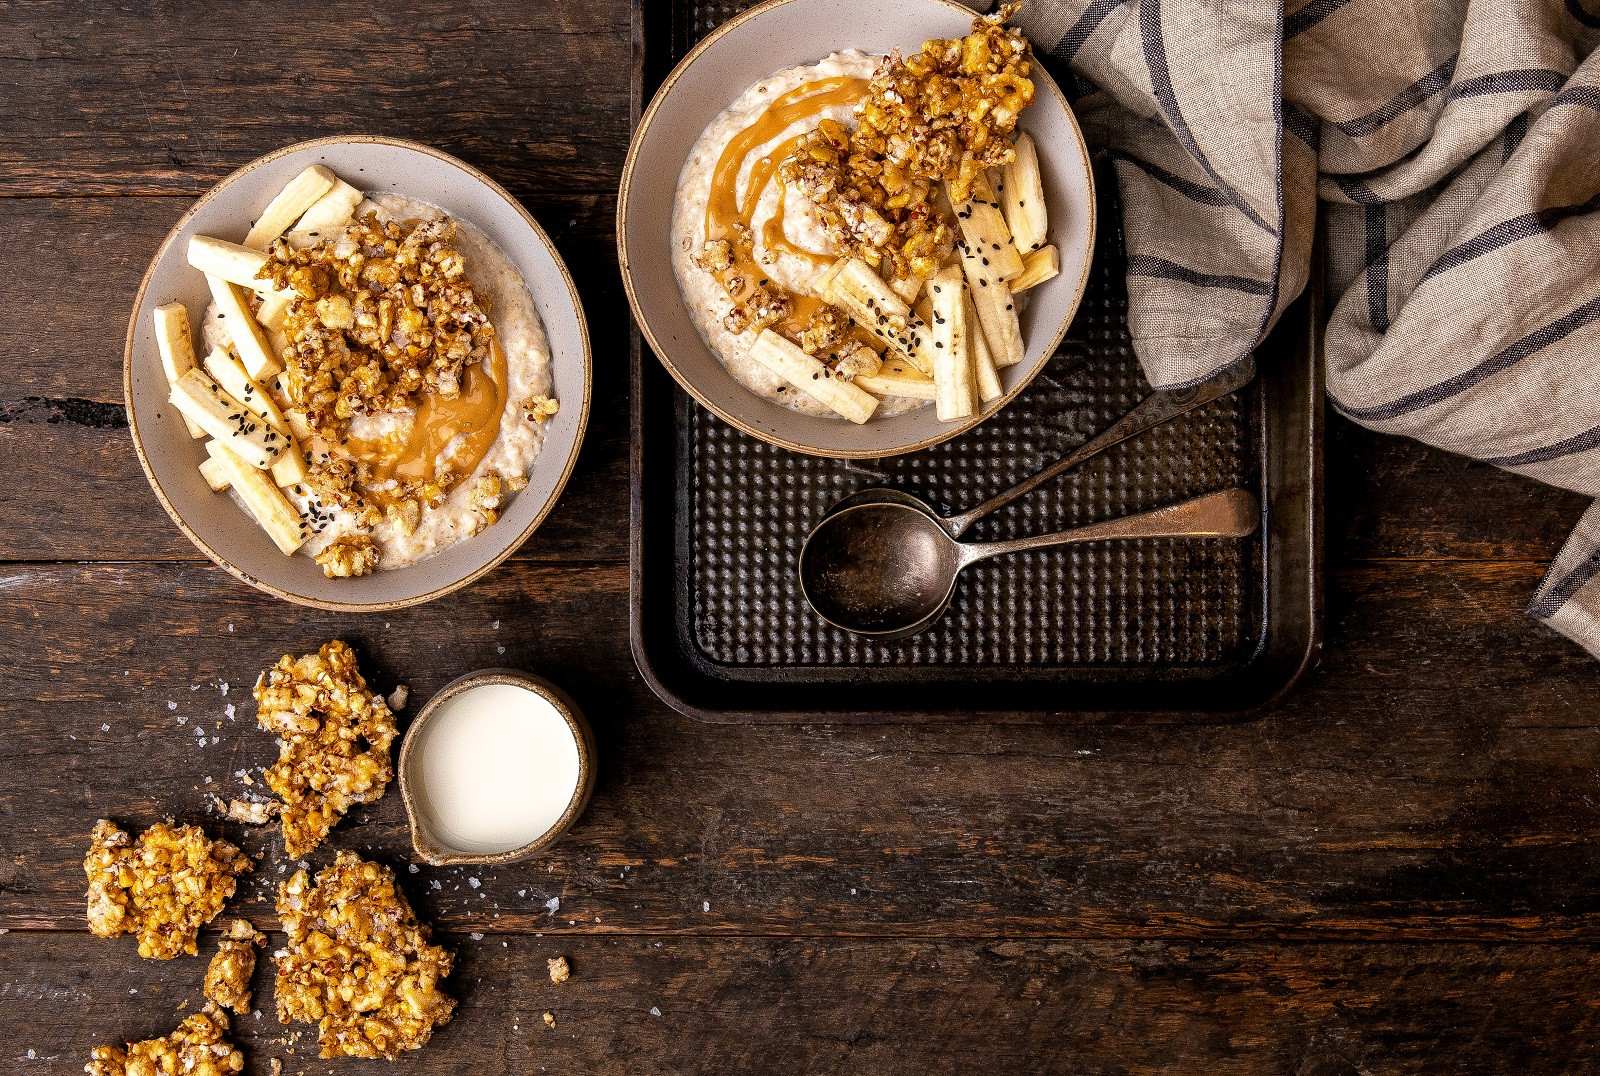 Ancient Grains Brittle with Nut Butter & Banana Porridge using Corn Thins or Ancient Grains slices - Vegetarian